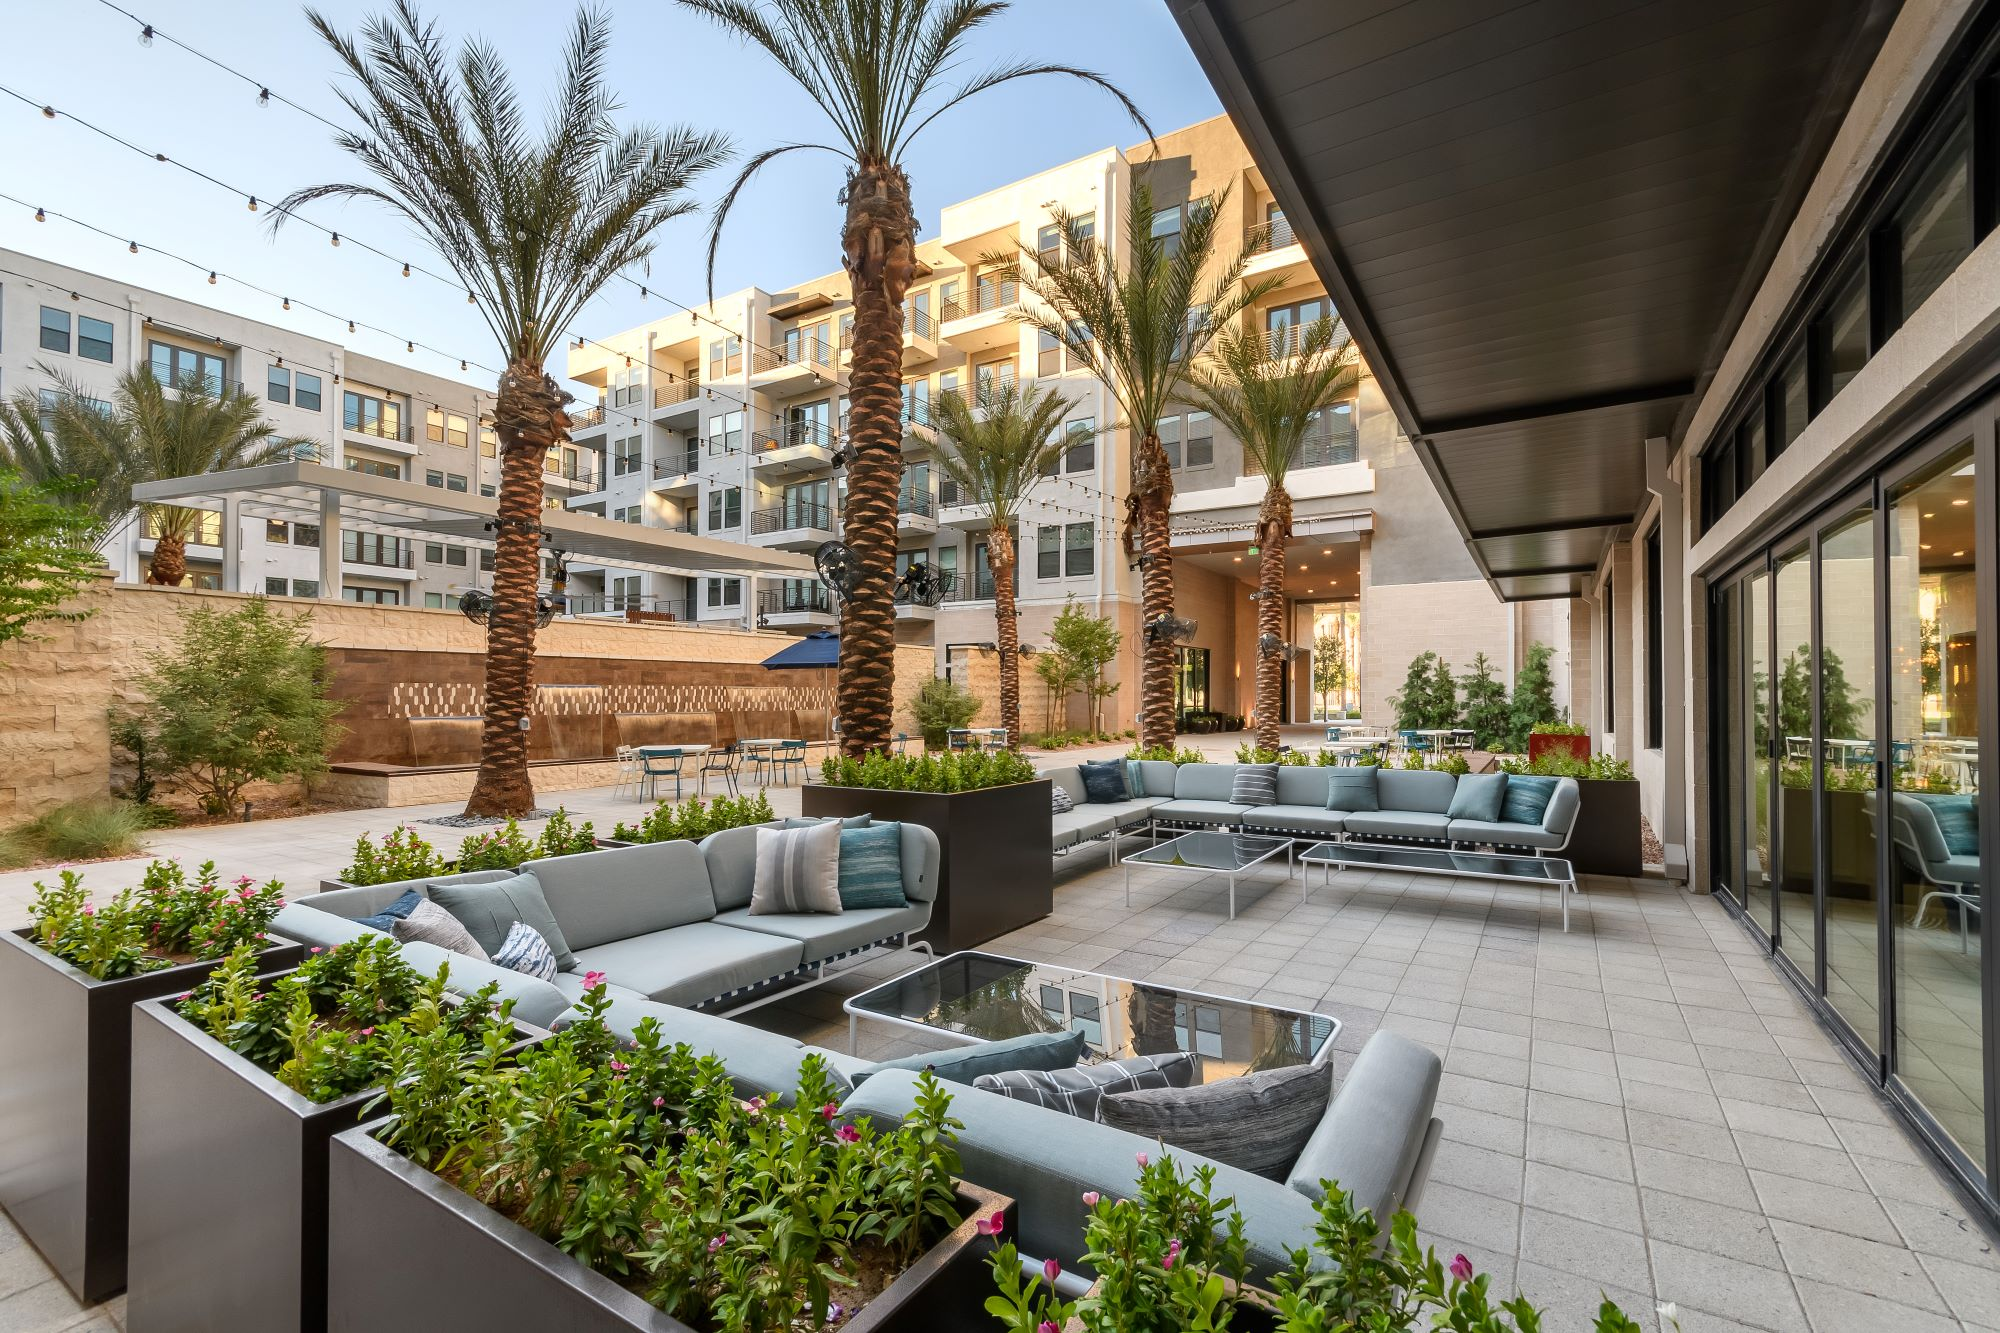 outdoor resident lounge area by the Auric Symphony Park fountain feature